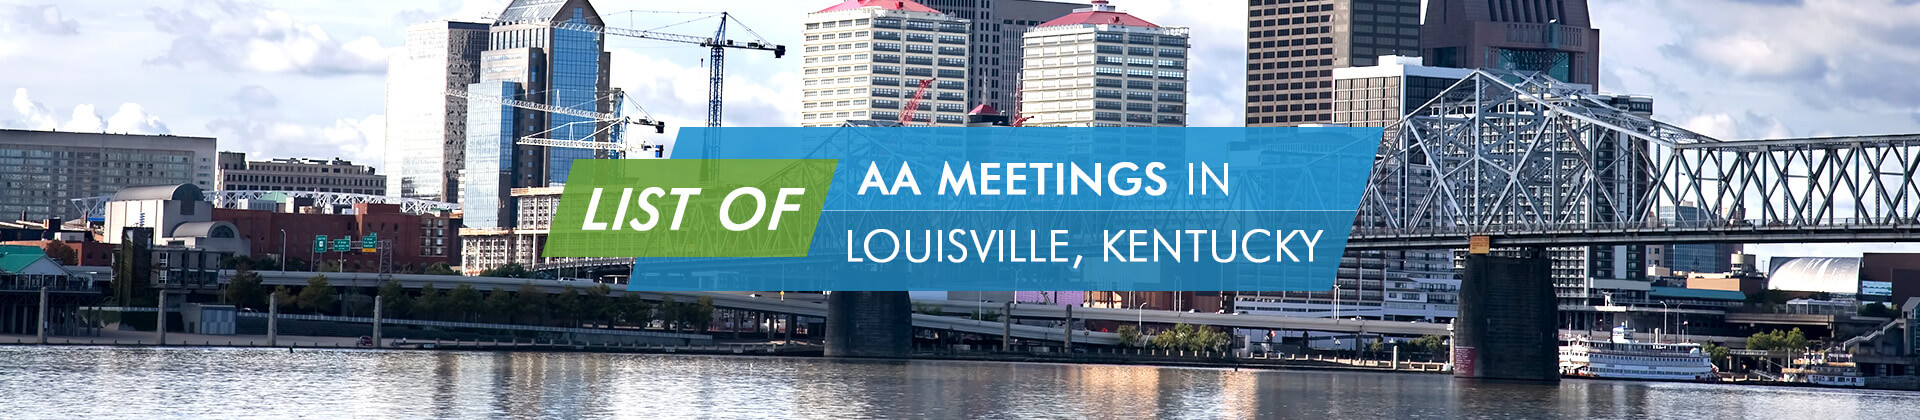 AA Meetings Louisville Kentucky